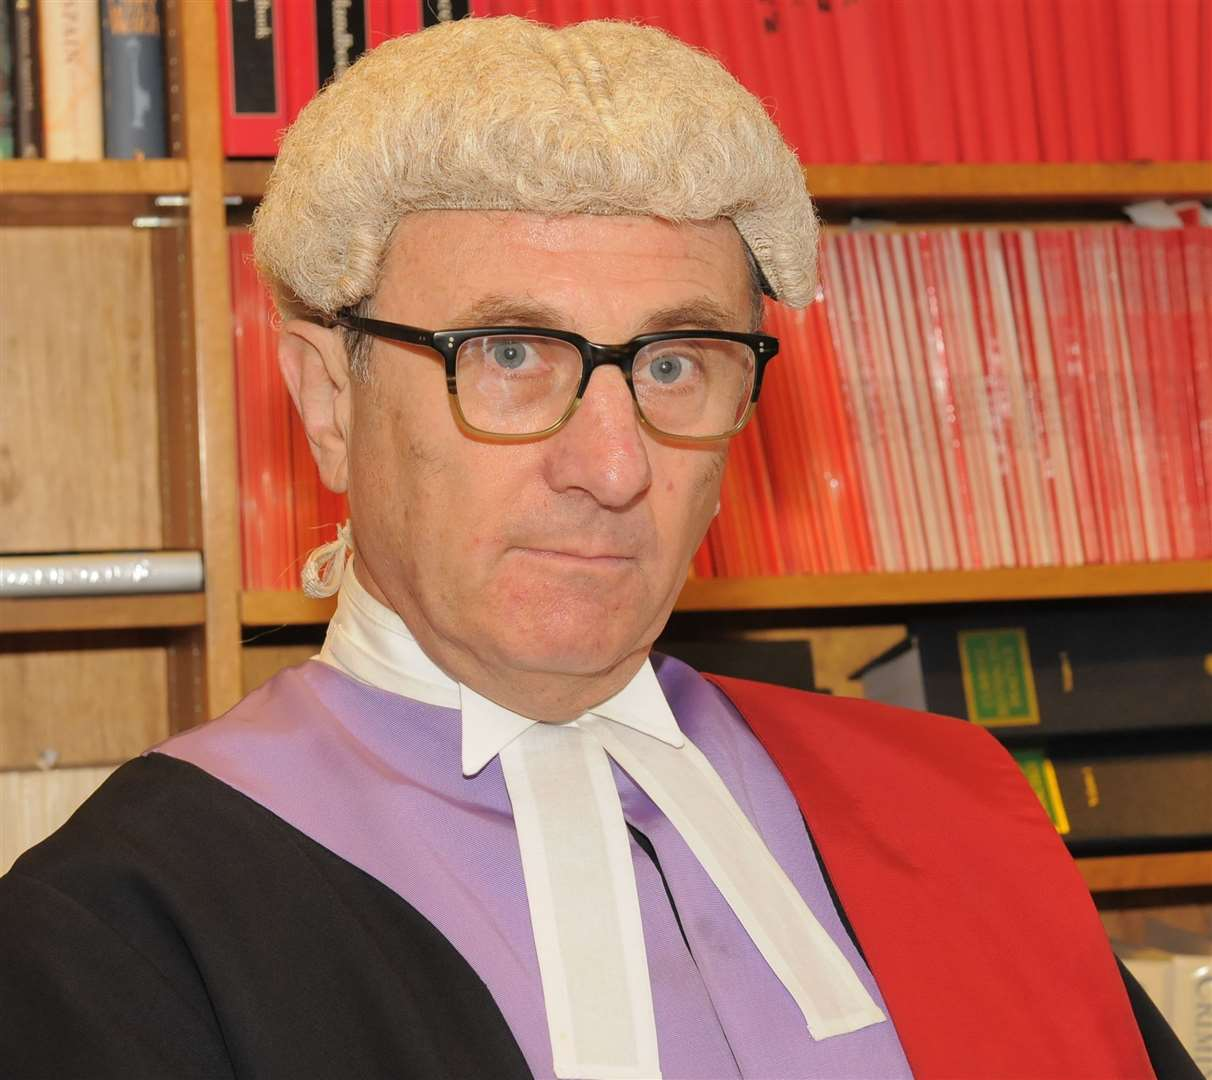 Judge David Griffith-Jones QC .Picture: Steve Crispe